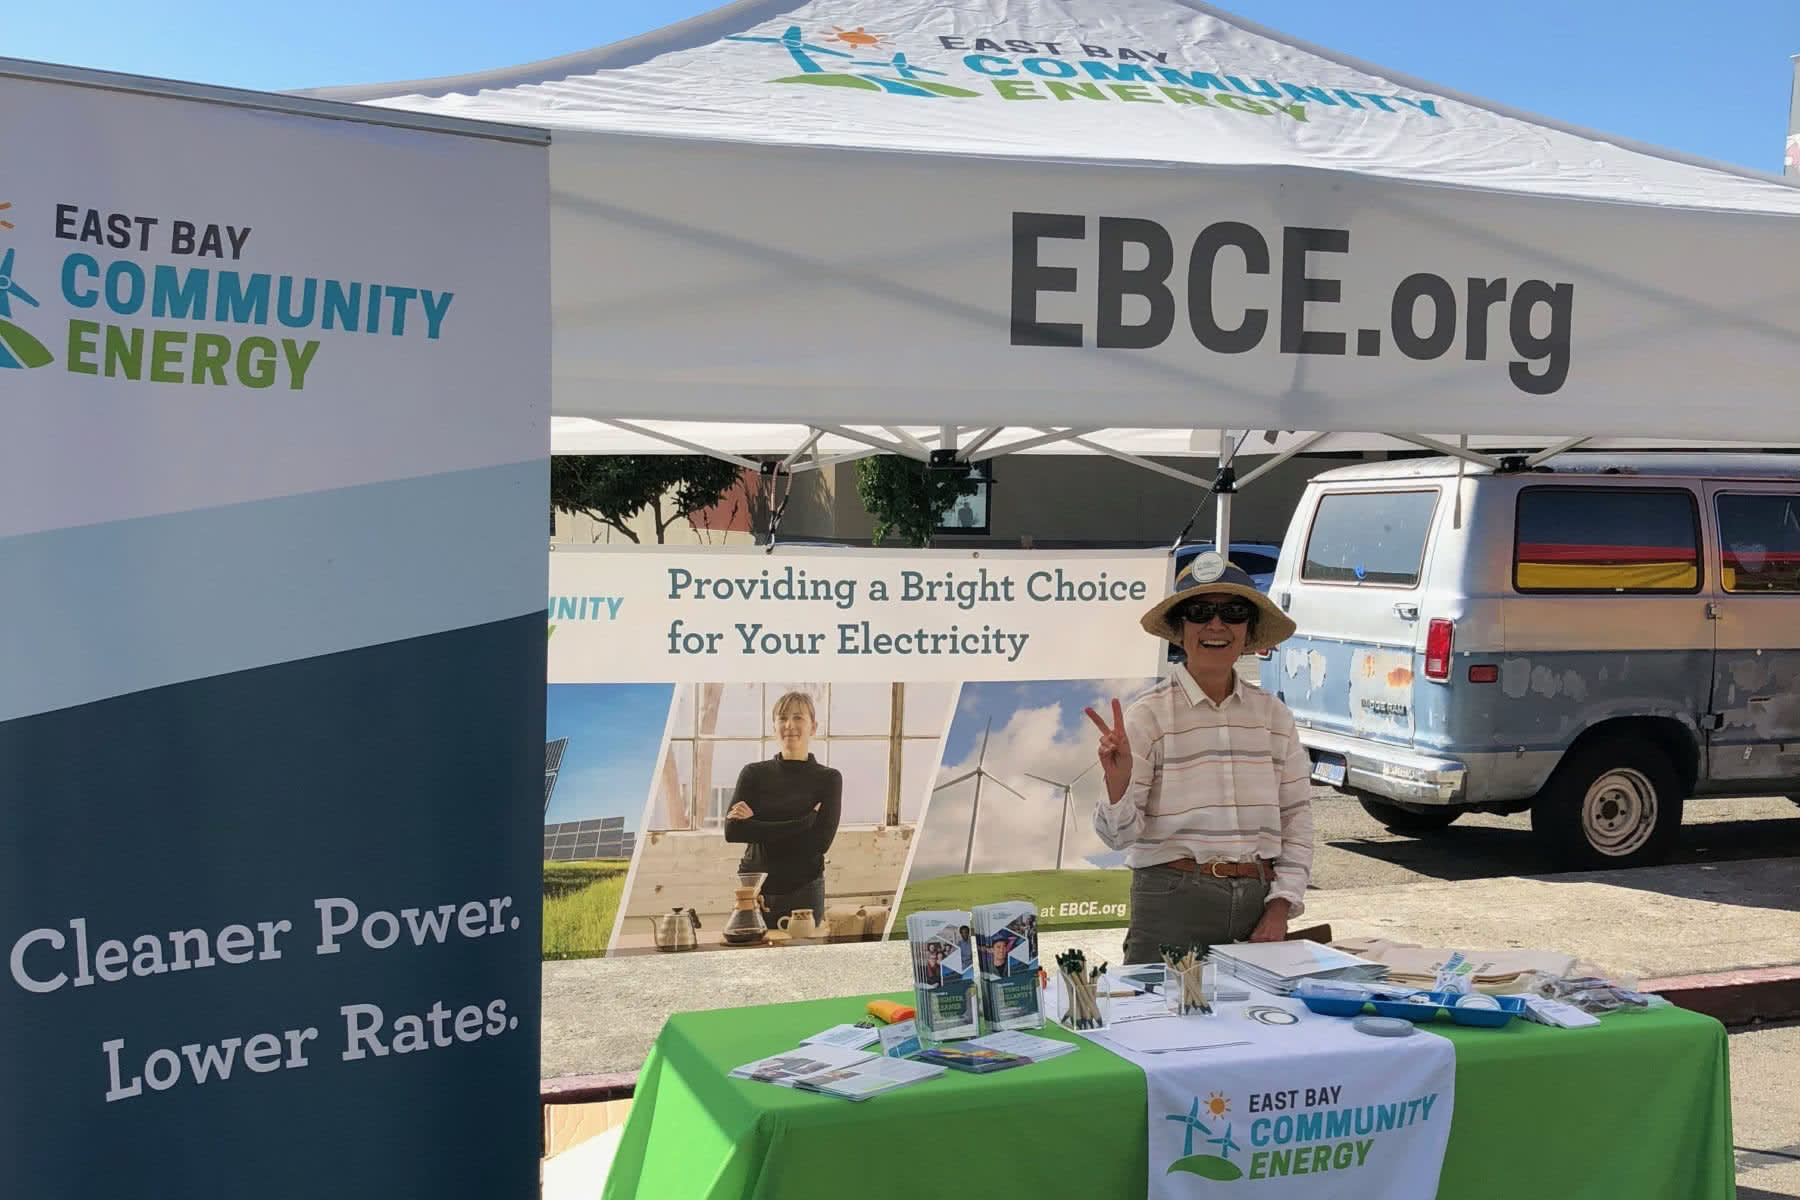 EBCE volunteering at an event booth